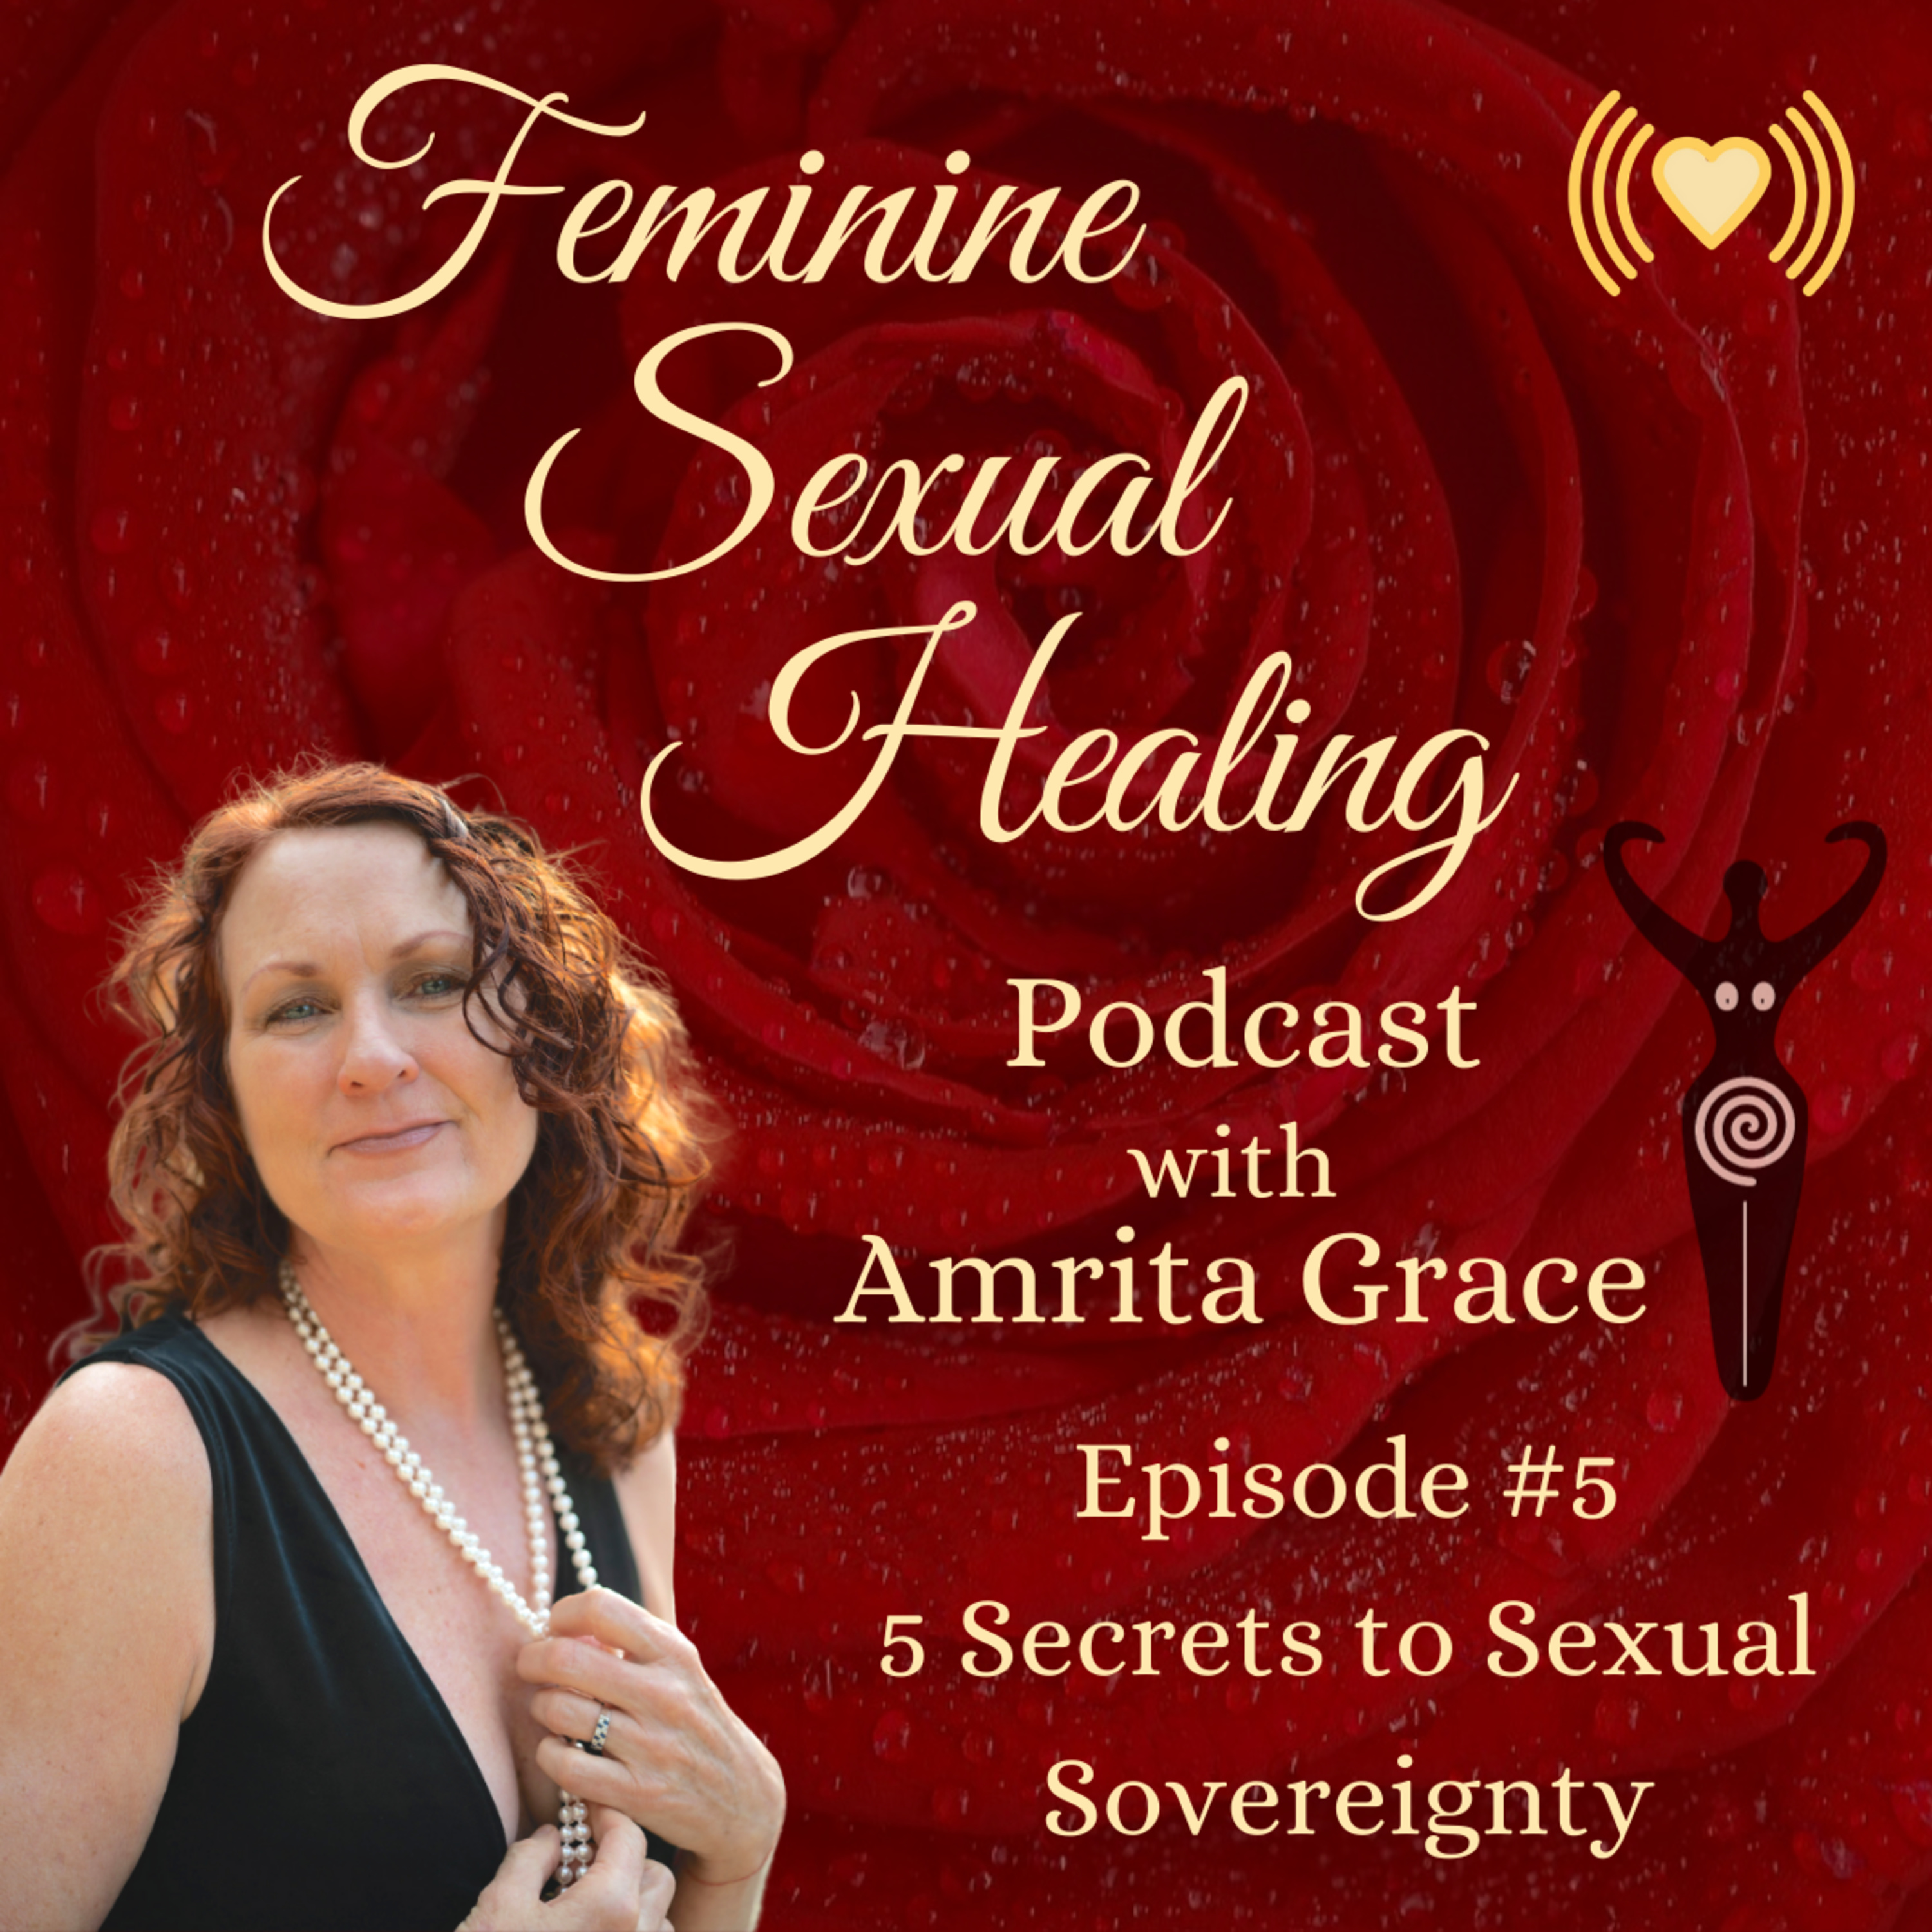 Episode #5 - 5 Secrets to Sexual Sovereignty